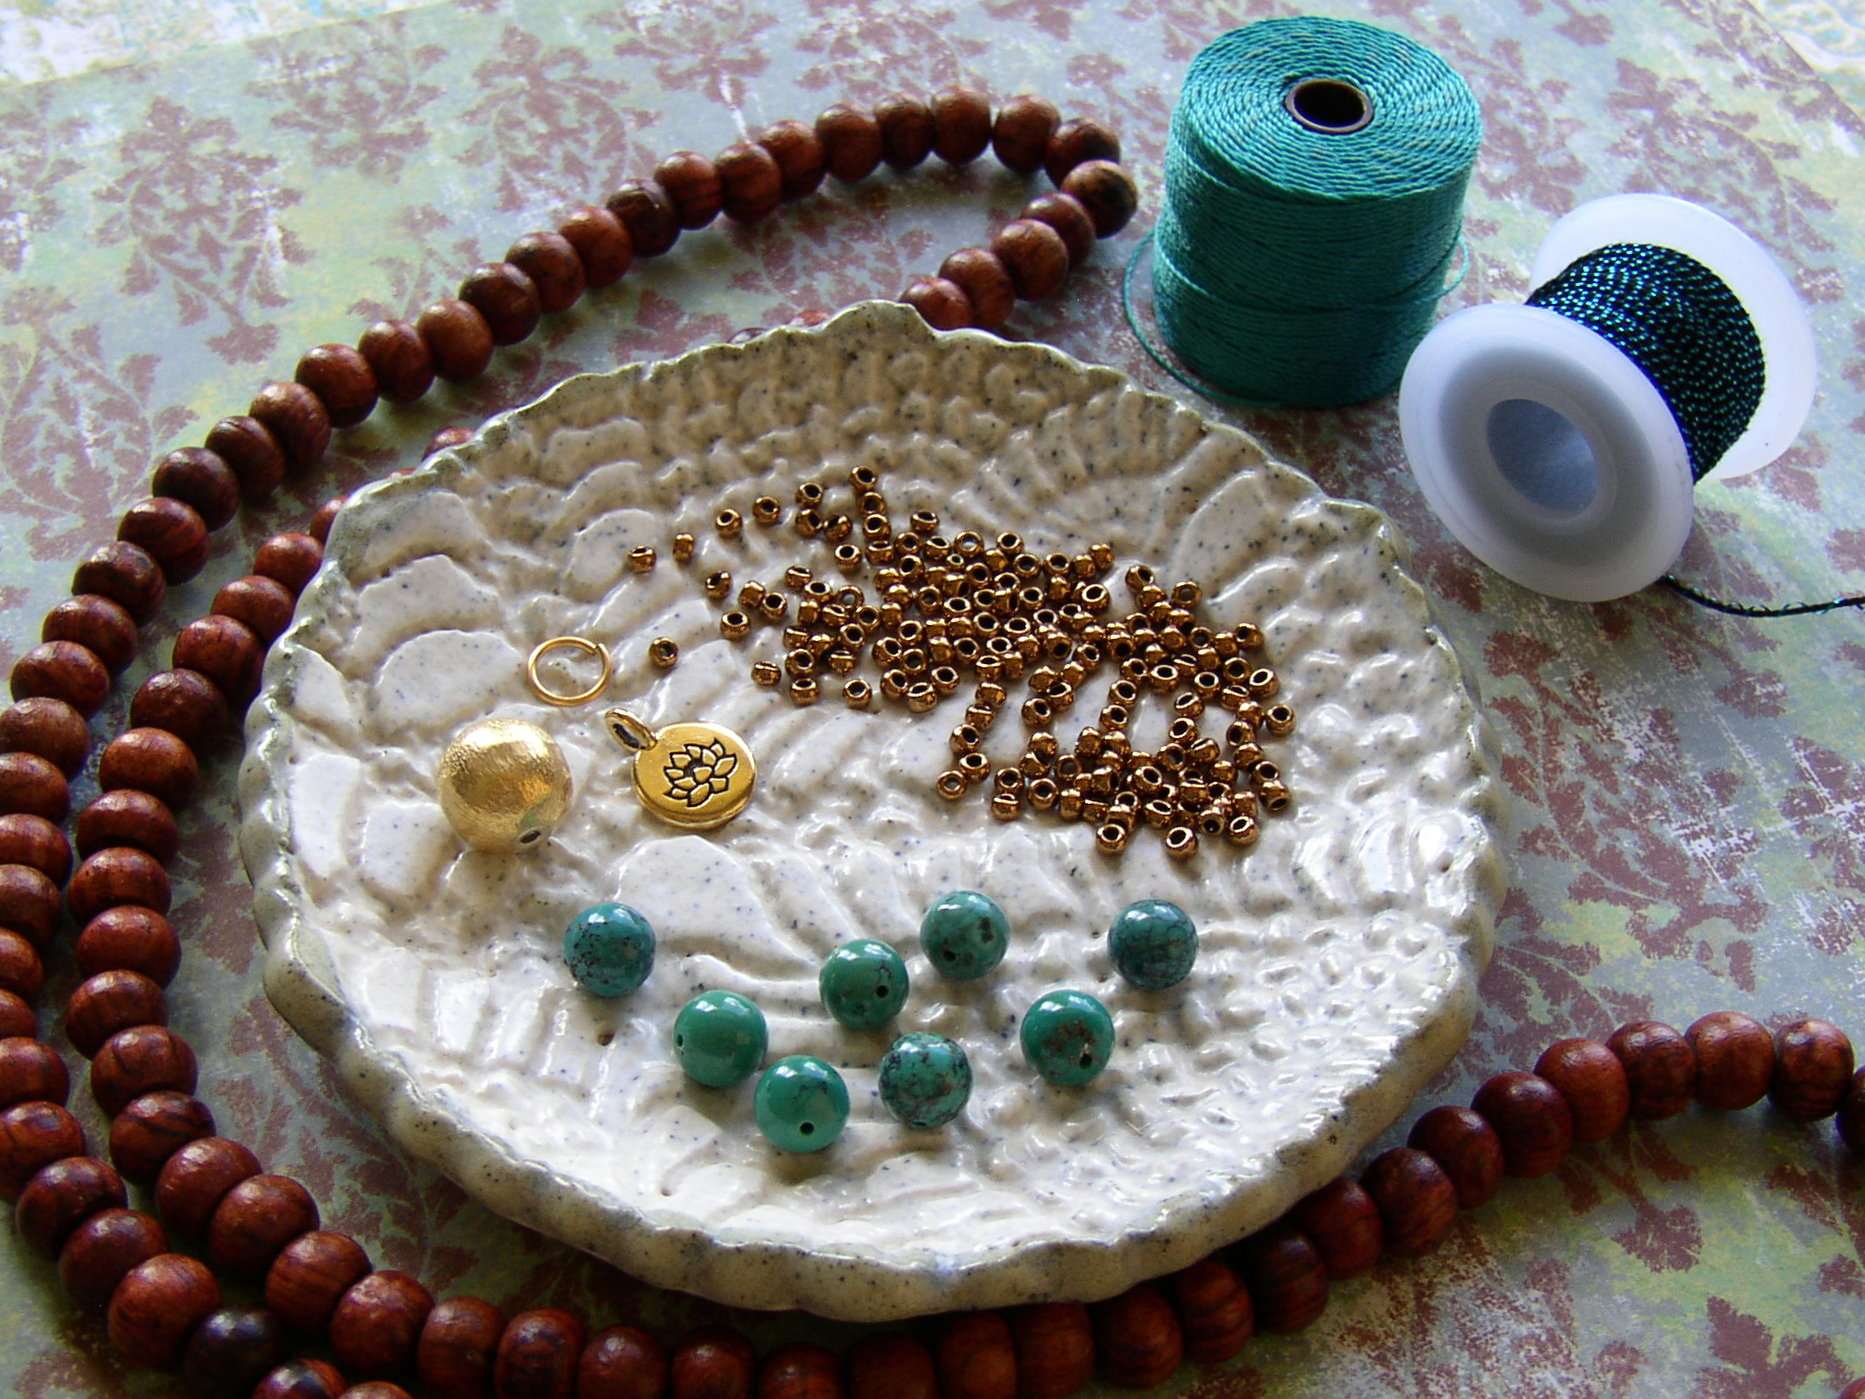 Supplies needed to make a personal Mala necklace include rosewood beads and a lotus charm